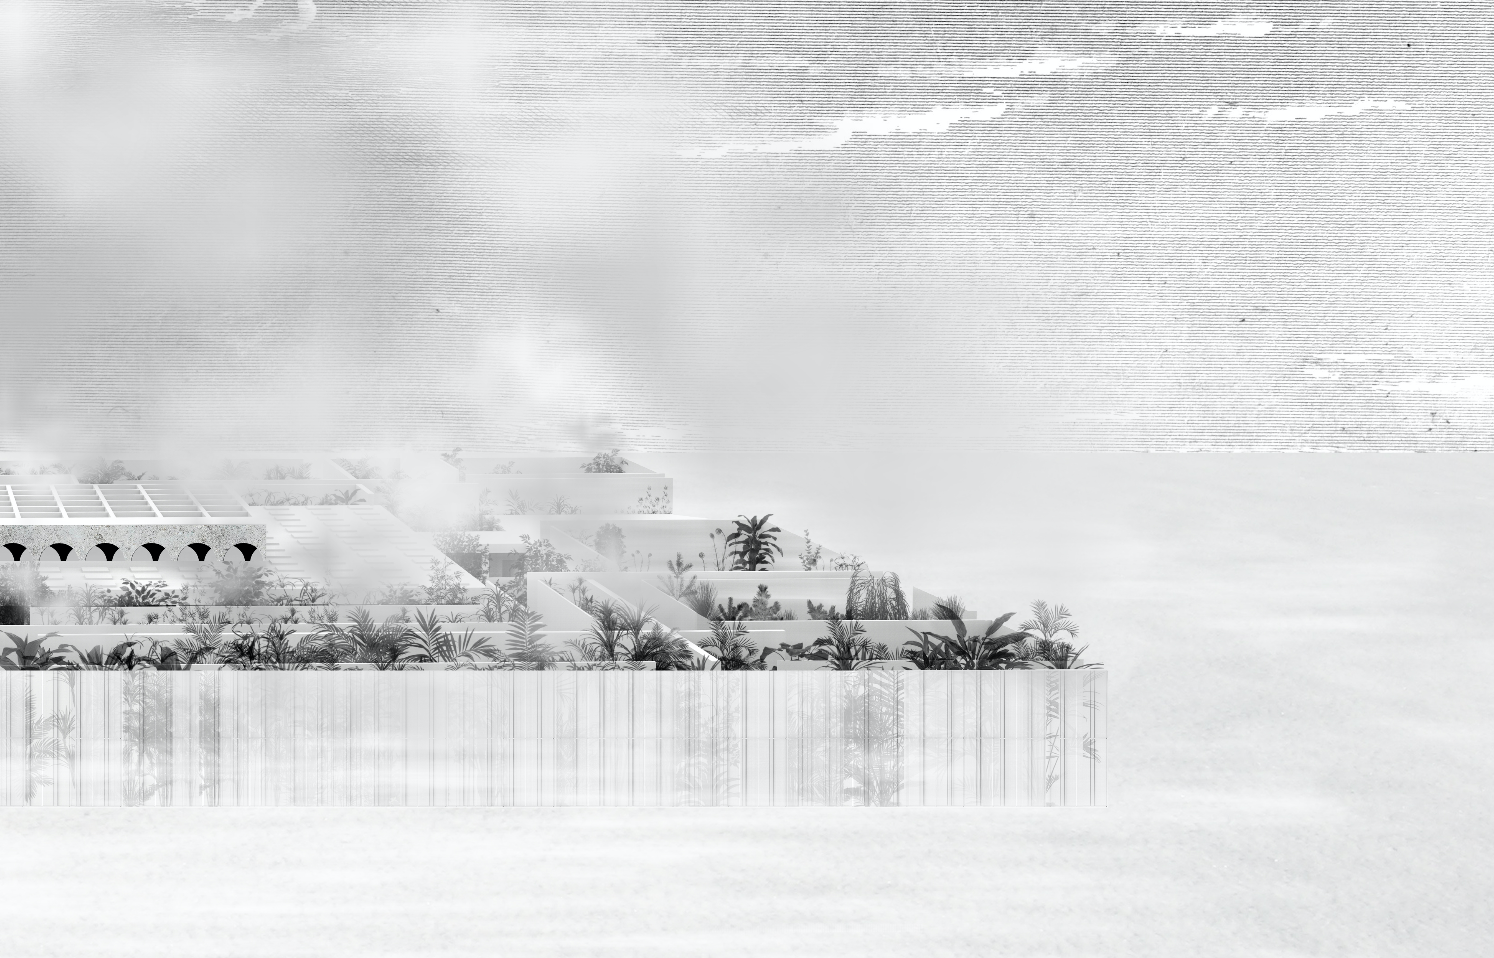 Air_Conditions: Restoring The Public Sphere